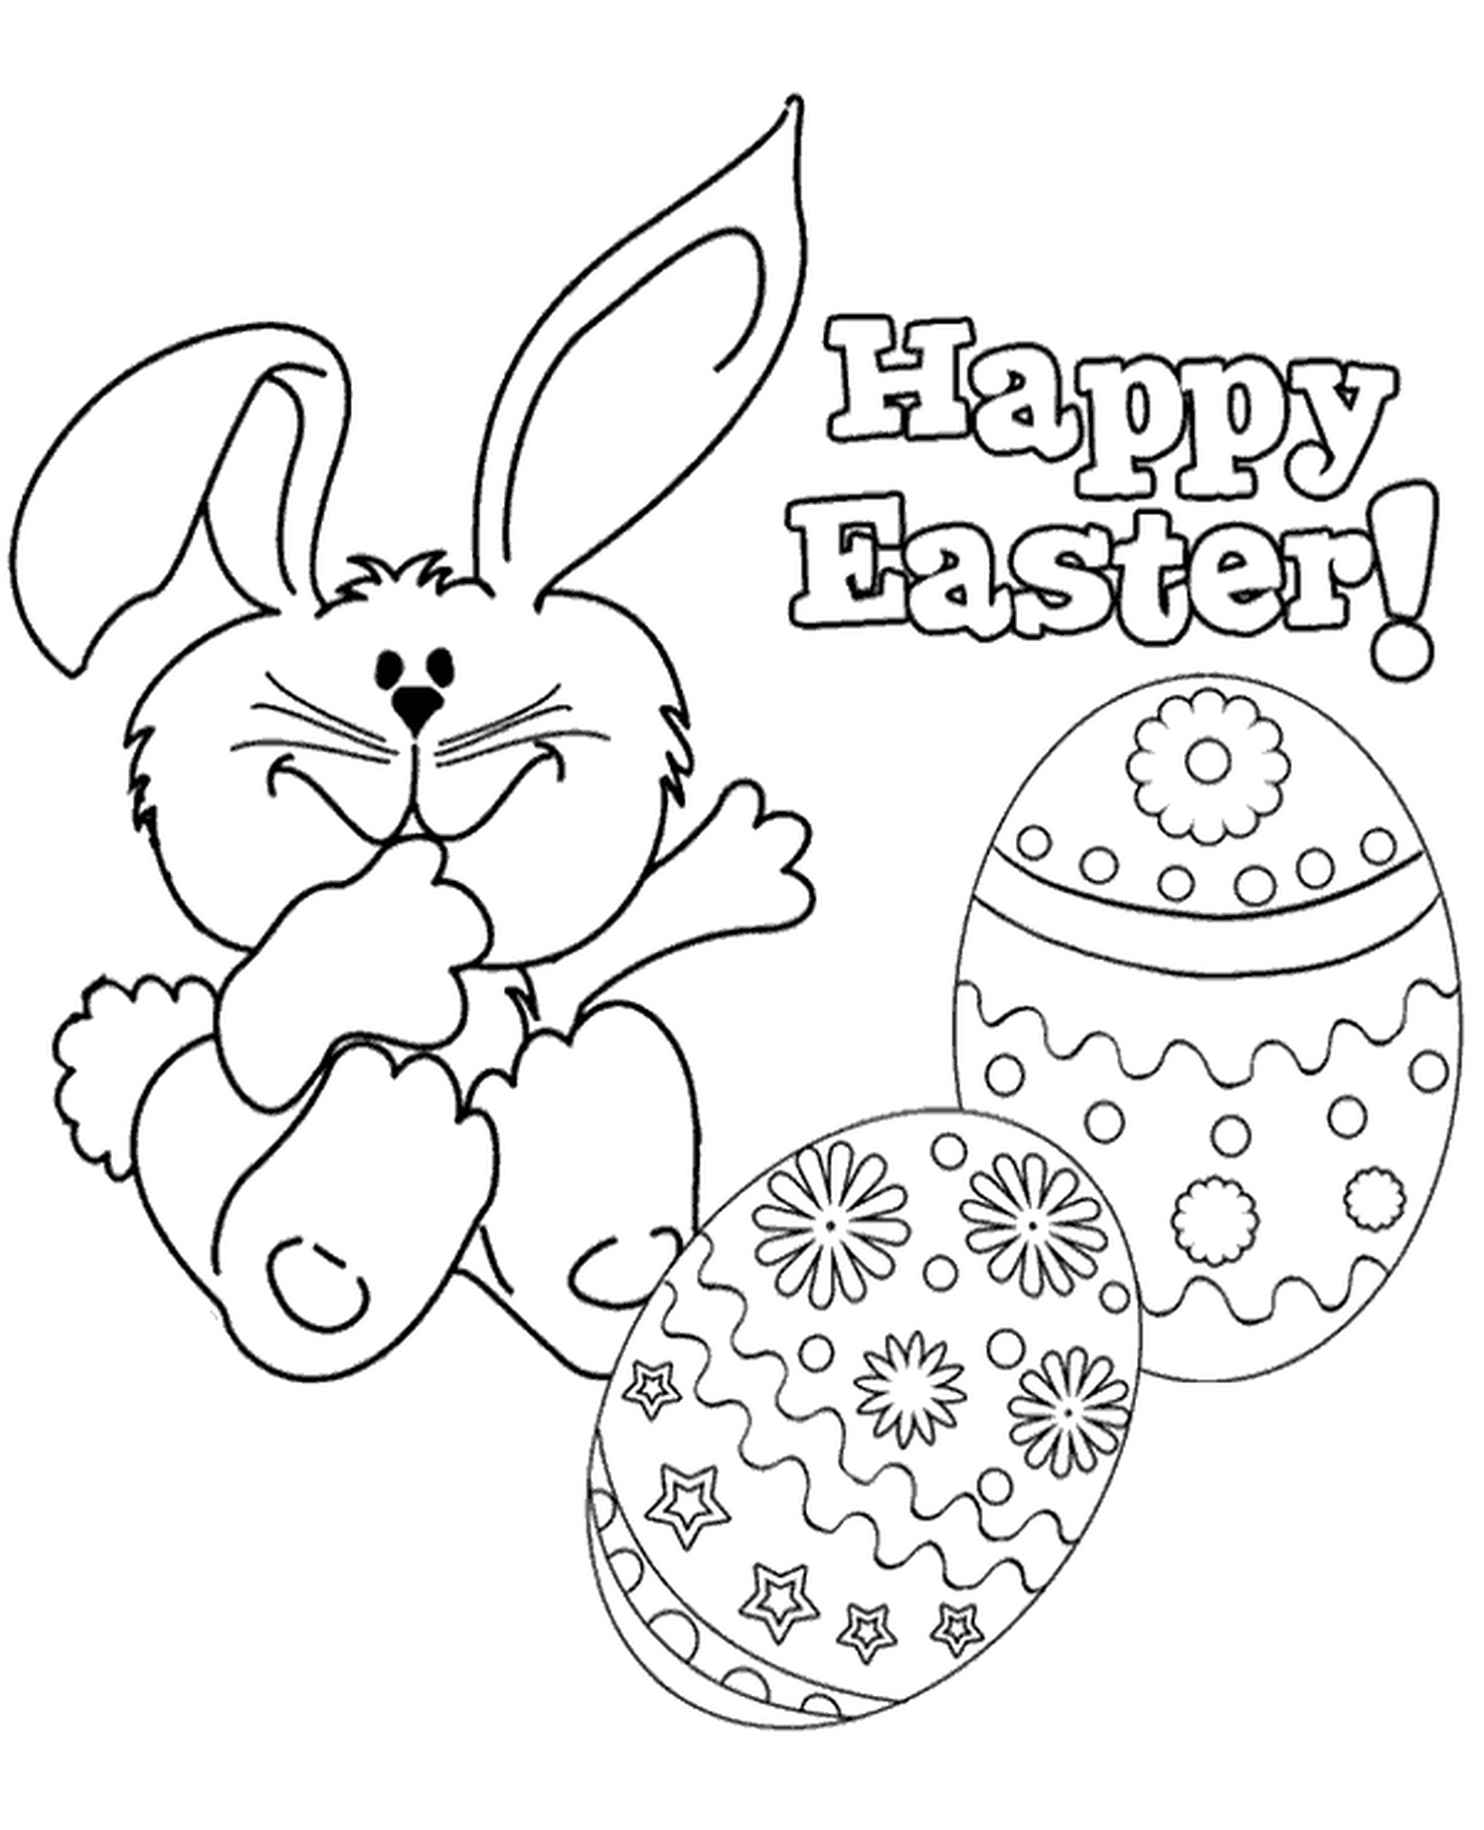 Easter Bunny Wishing You Happy Easter Coloring Page